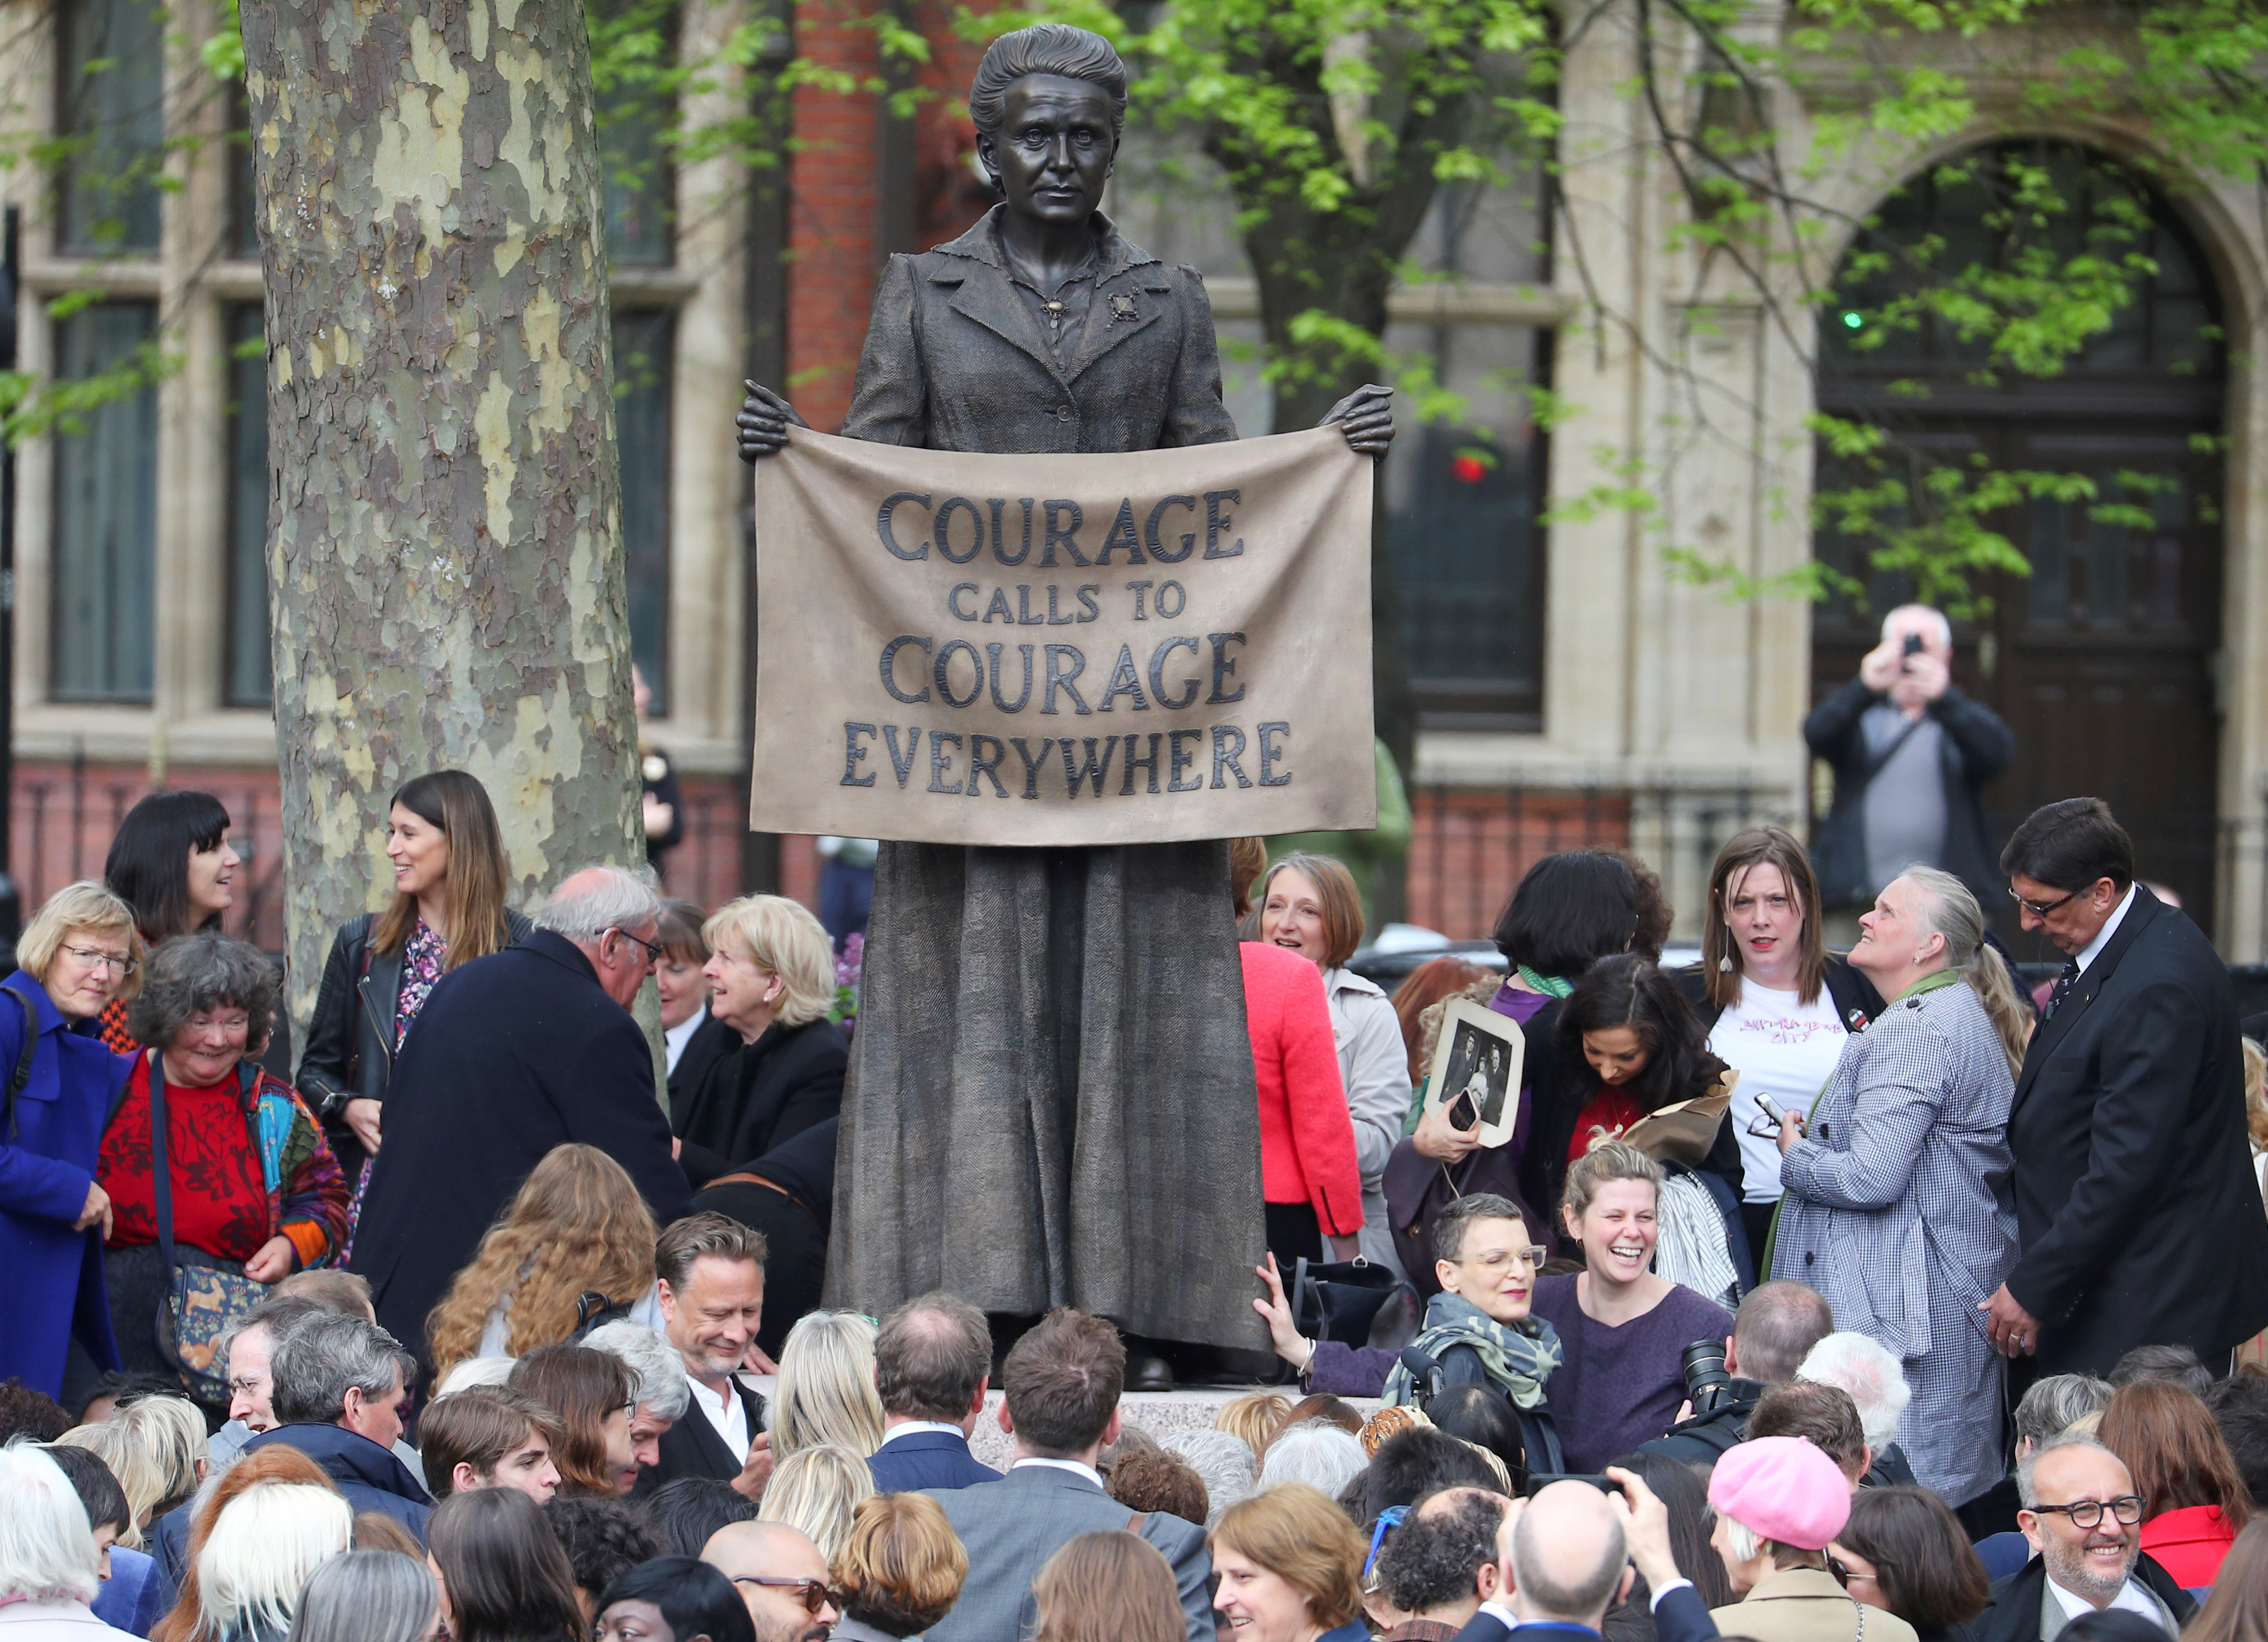 People attending the official unveiling gather around the statue of suffragist Millicent Fawcett on Parliament Square